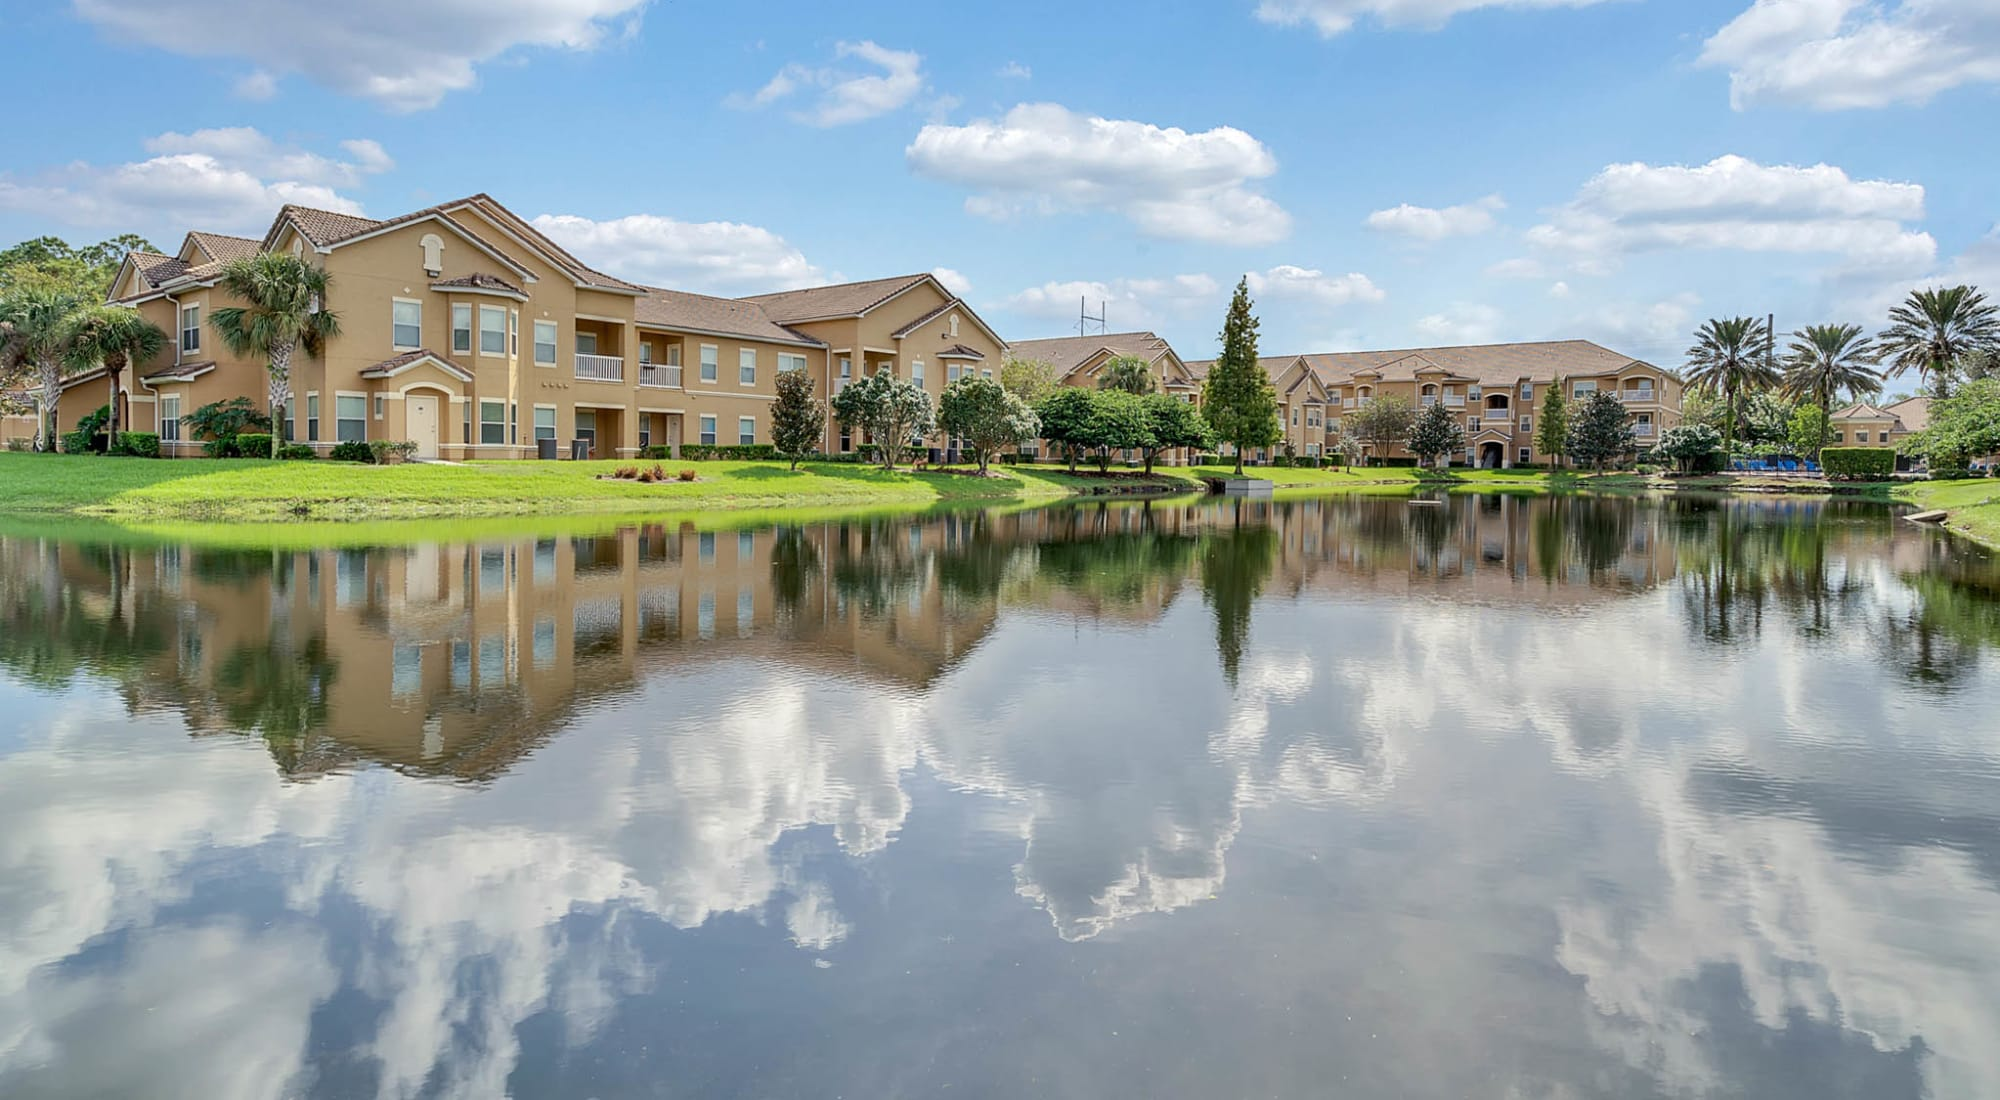 Apartments at Palms at World Gateway in Orlando, Florida